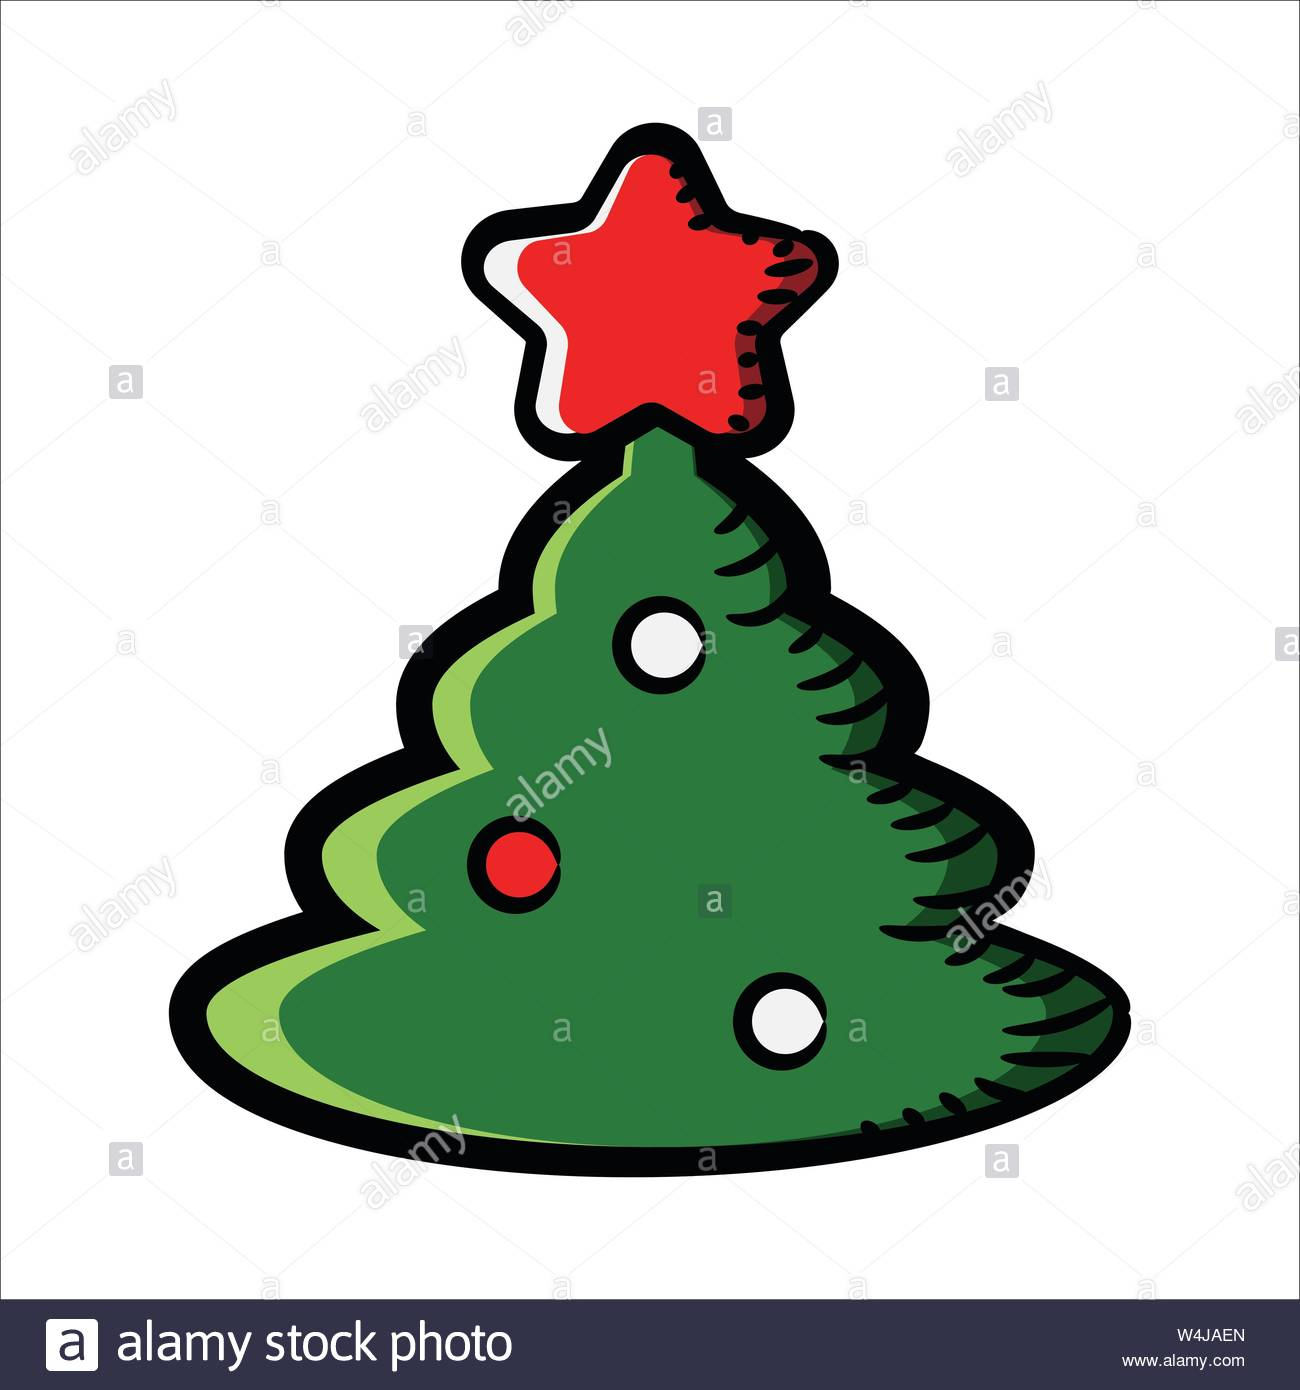 Christmas New Year S Green Fir Tree With A Red Star The Icon In Cartoon Style Vector Illustration Stock Vector Image Art Alamy Papa bear and the cubs search the woods for the perfect christmas tree, but run afoul of the woodland animals who live in the audra lee and josh jarboe are your hosts for an hour of classic christmas cartoons. https www alamy com christmas new year s green fir tree with a red star the icon in cartoon style vector illustration image261017533 html